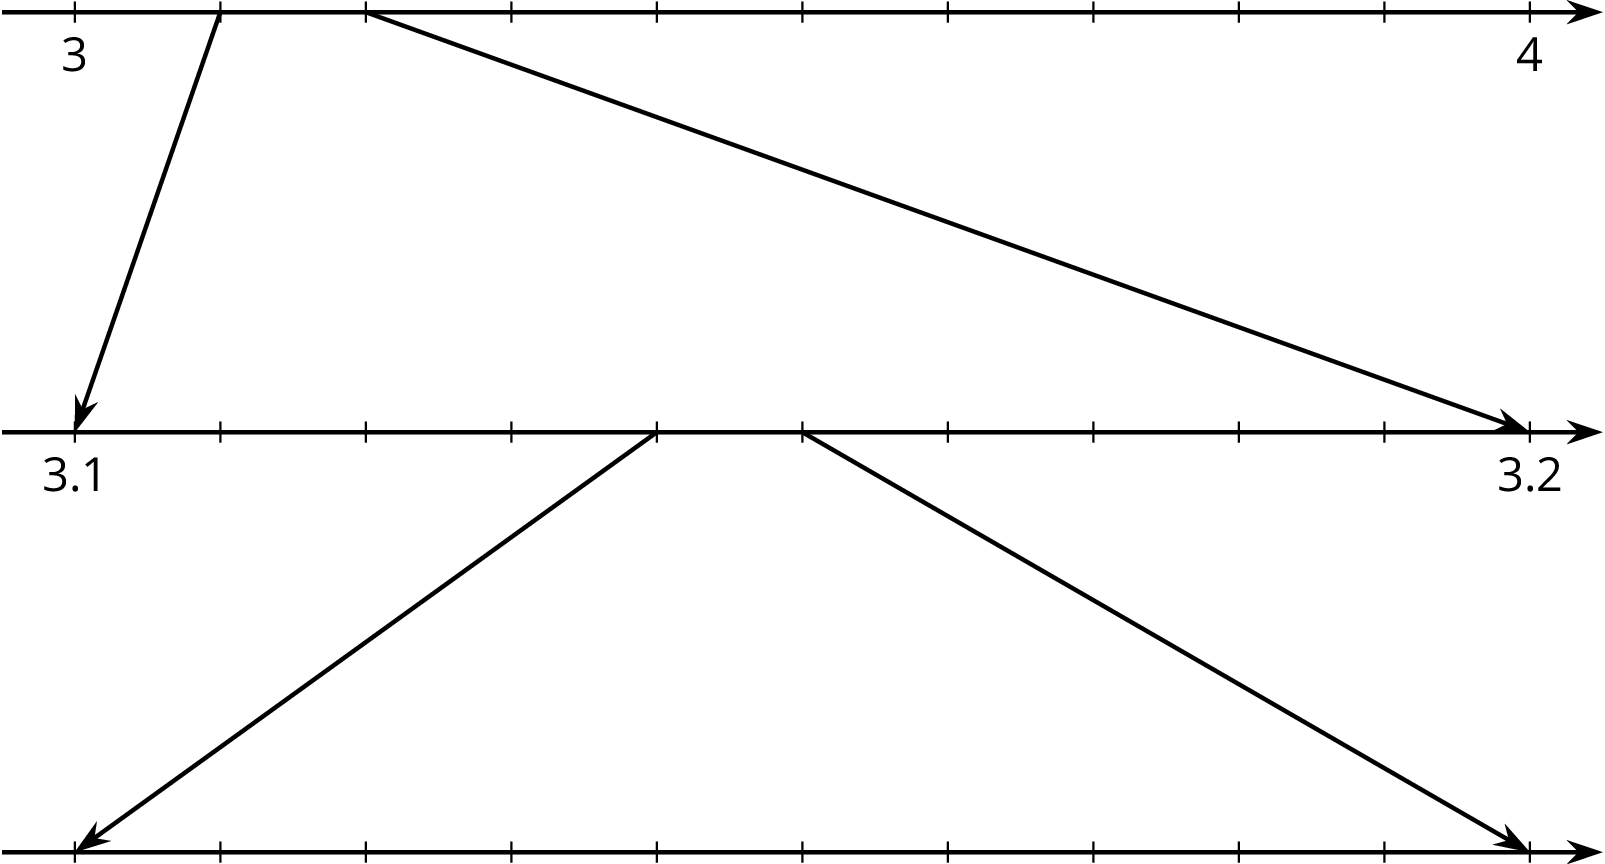 "A zooming number line consisting of 3 number lines, aligned vertically, each with 11 evenly spaced tick marks. On the top number line, the first tick mark is labeled ""3"" and the eleventh tick mark is labeled ""4."" Two arrows are drawn from the top number line to the middle number line. The first arrow is drawn from the second tick mark on the top number line to the first tick mark on the middle number line. The other arrow is drawn from the third tick mark on top number to the eleventh tick mark on the middle number line. On the middle number line, the first tick mark is labeled ""3 point 1"" and the eleventh tick mark is labeled ""3 point 2."" Two arrows are drawn from the middle number line to the bottom number line. The first arrow is drawn from the fifth tick mark on the middle number line to the first tick mark on the bottom number line. The other arrow is drawn from the sixth tick mark on the middle number line to the eleventh tick mark on the bottom number line. The bottom number line is not labeled."